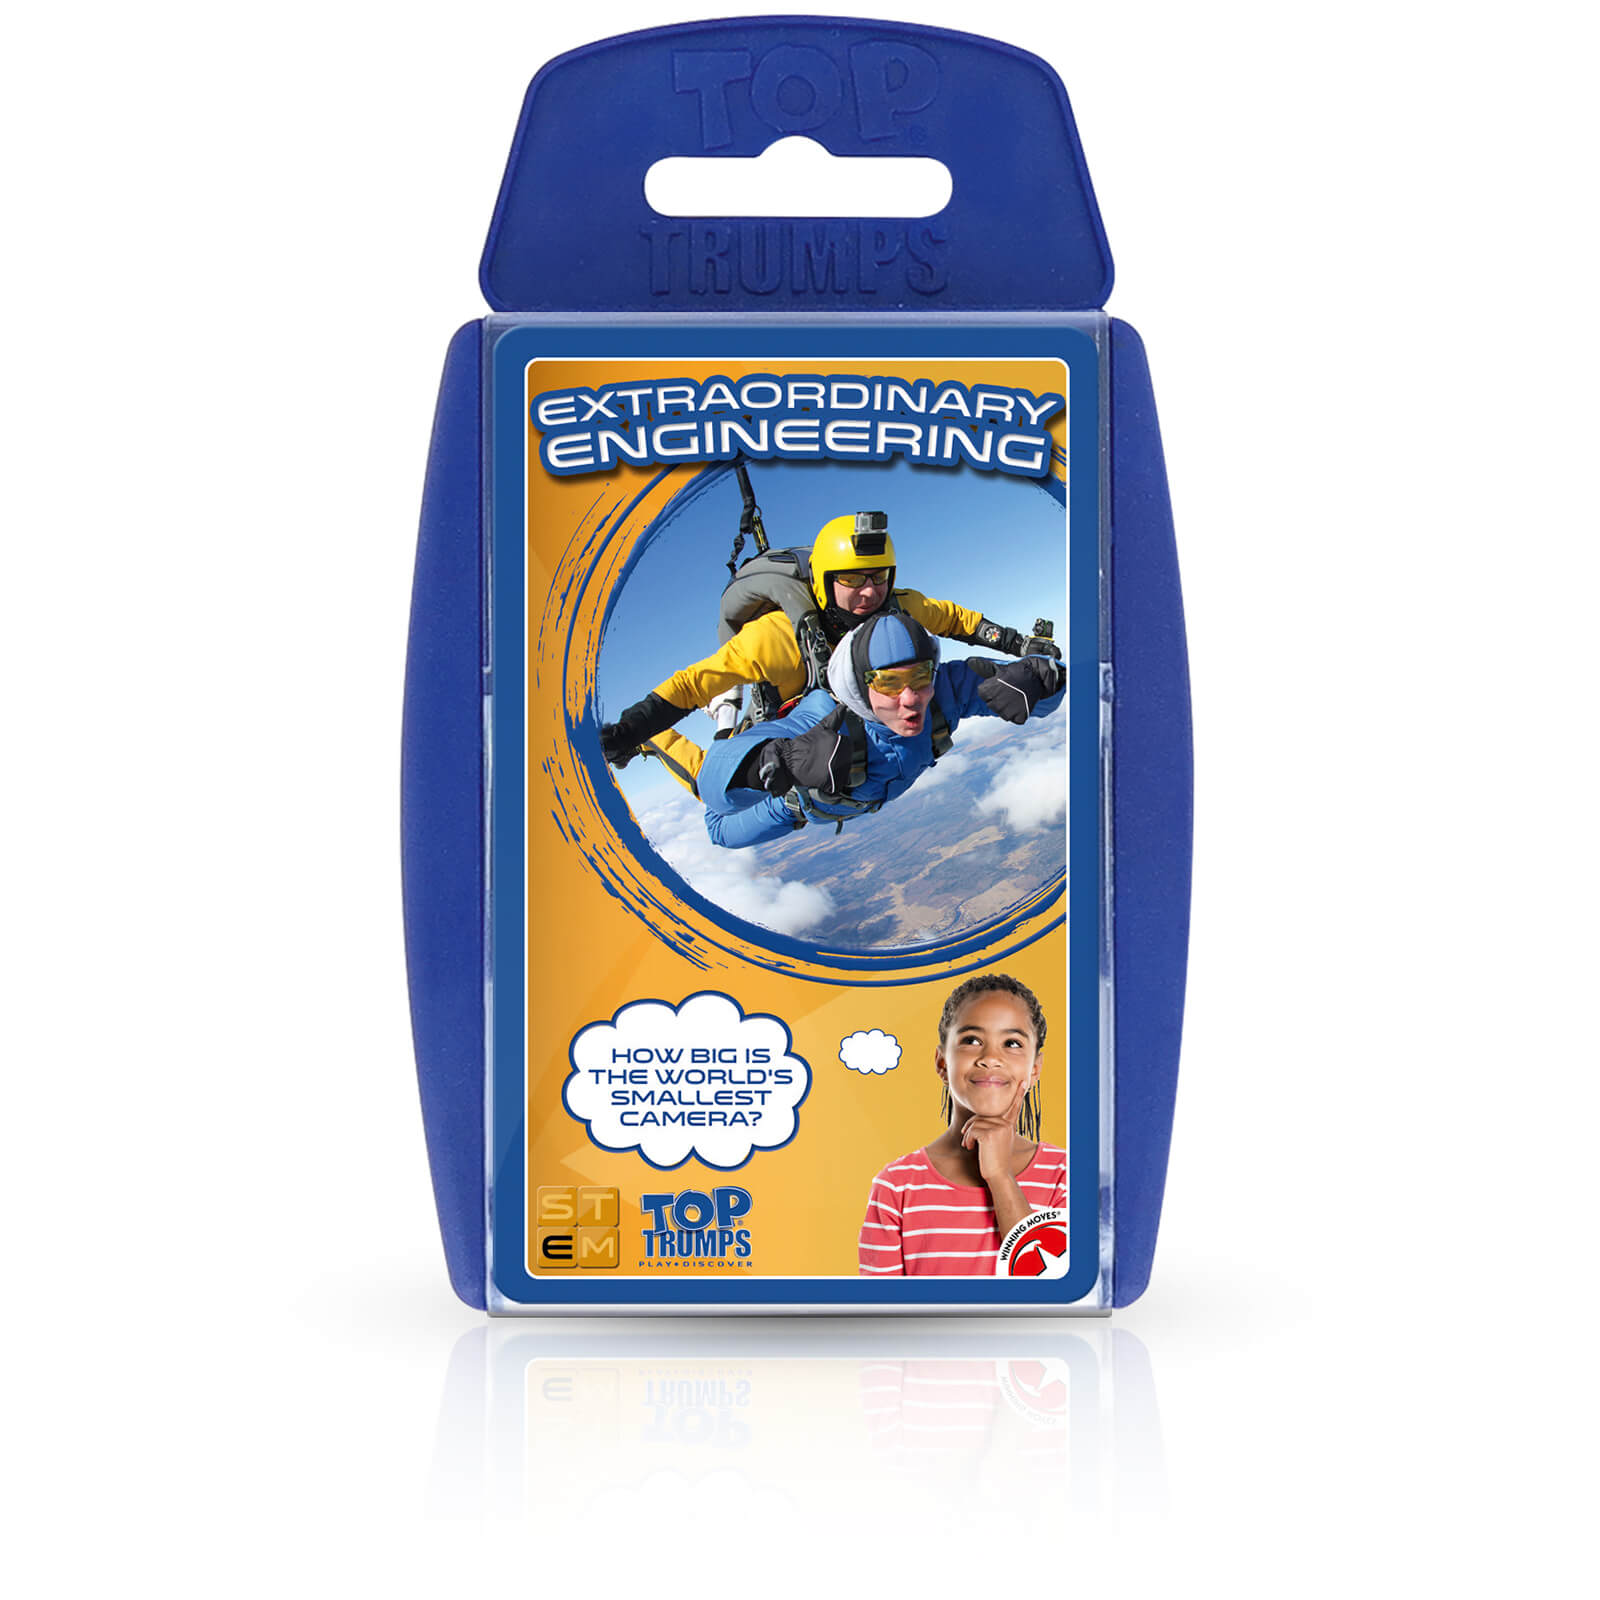 Image of Top Trumps Card Game - STEM Extraordinary Engineering Edition